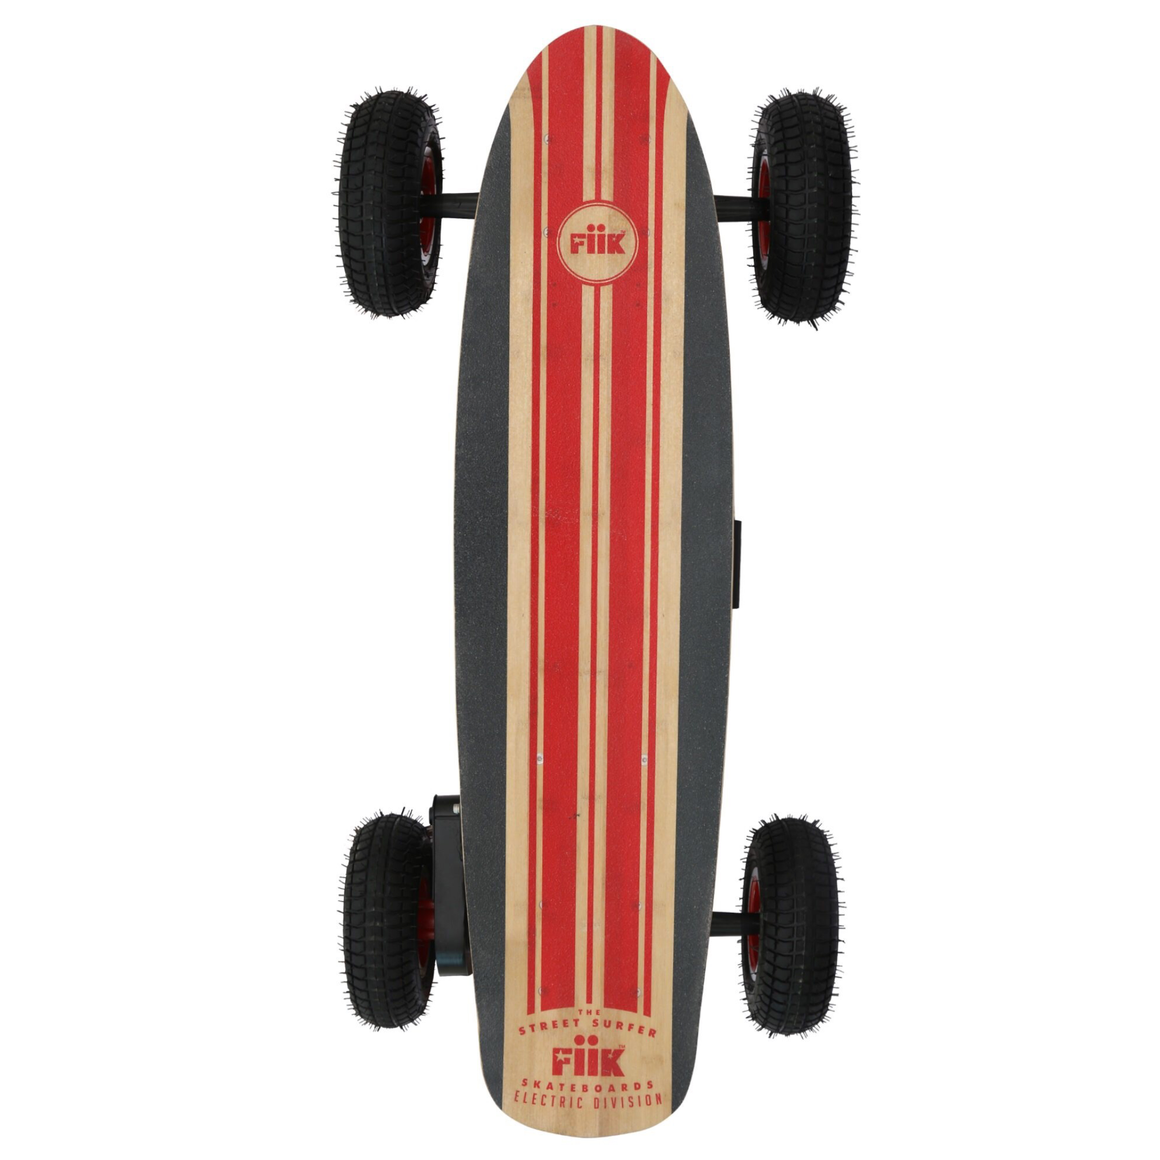 "FiiK Street Surfer All Terrain Electric Skateboard - 1000W Single Belt Drive Brushless Motor - 22MPH 15 / 50 Mile Range - 43"" Deck - 9"" Pneumatic Tires - 13Ah / 30Ah Rechargeable Lithium Battery - 2.4GHz Wireless Remote Control - ElectricSkateHQ"